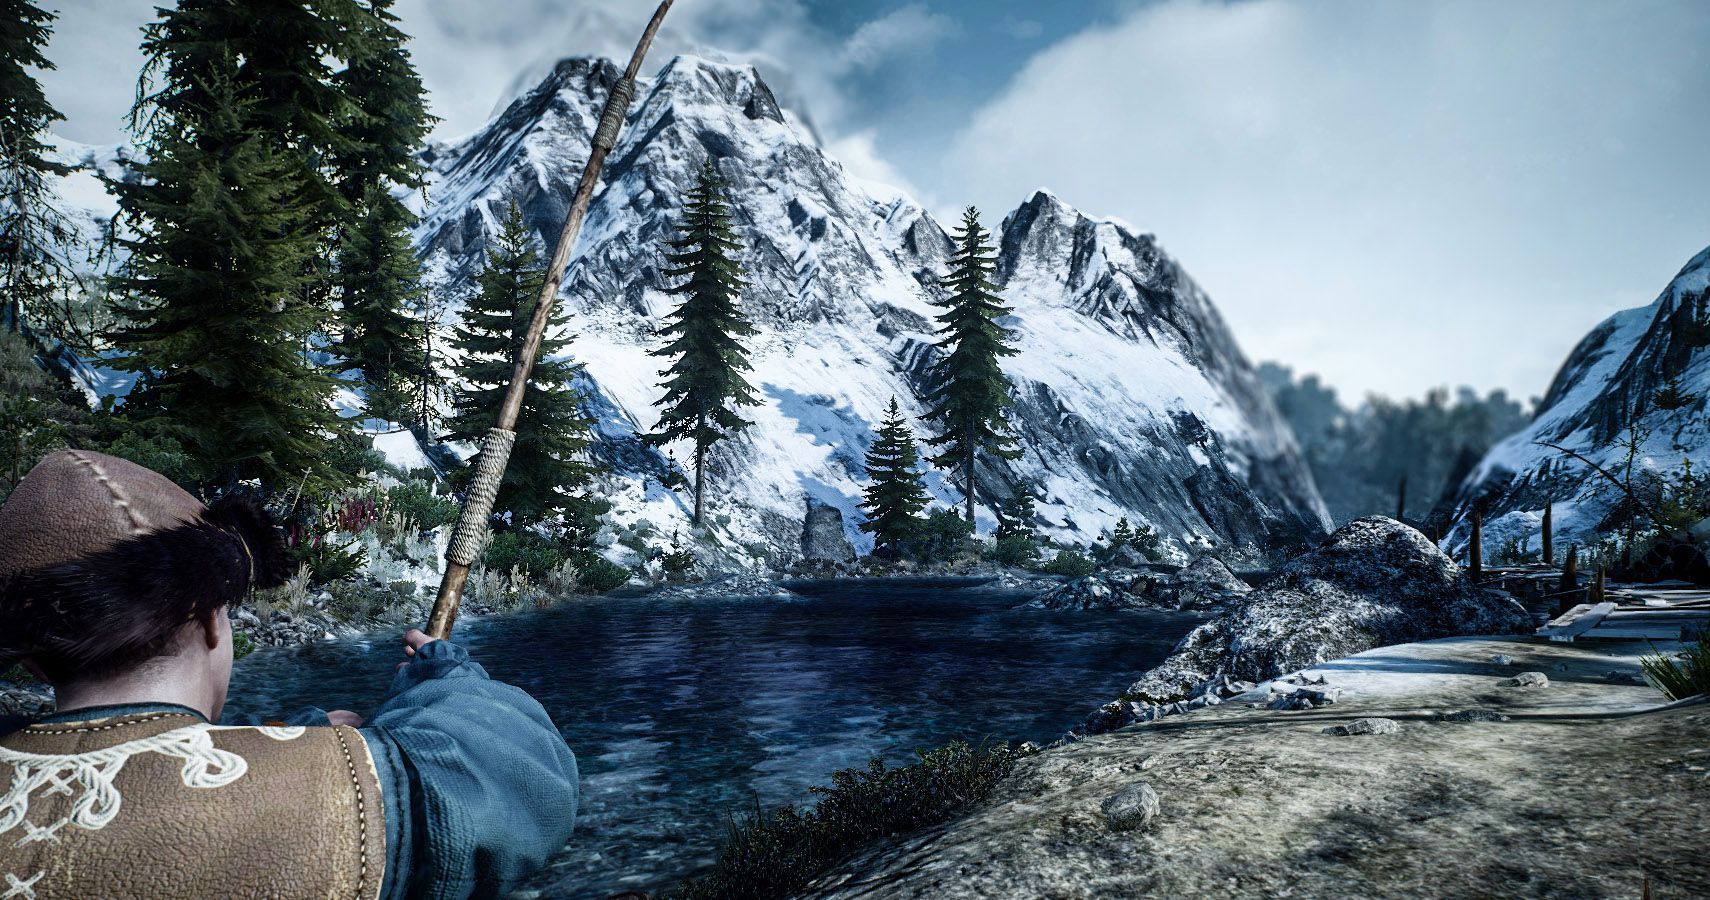 The Witcher 3: 10 Most Beautiful Locations, Ranked